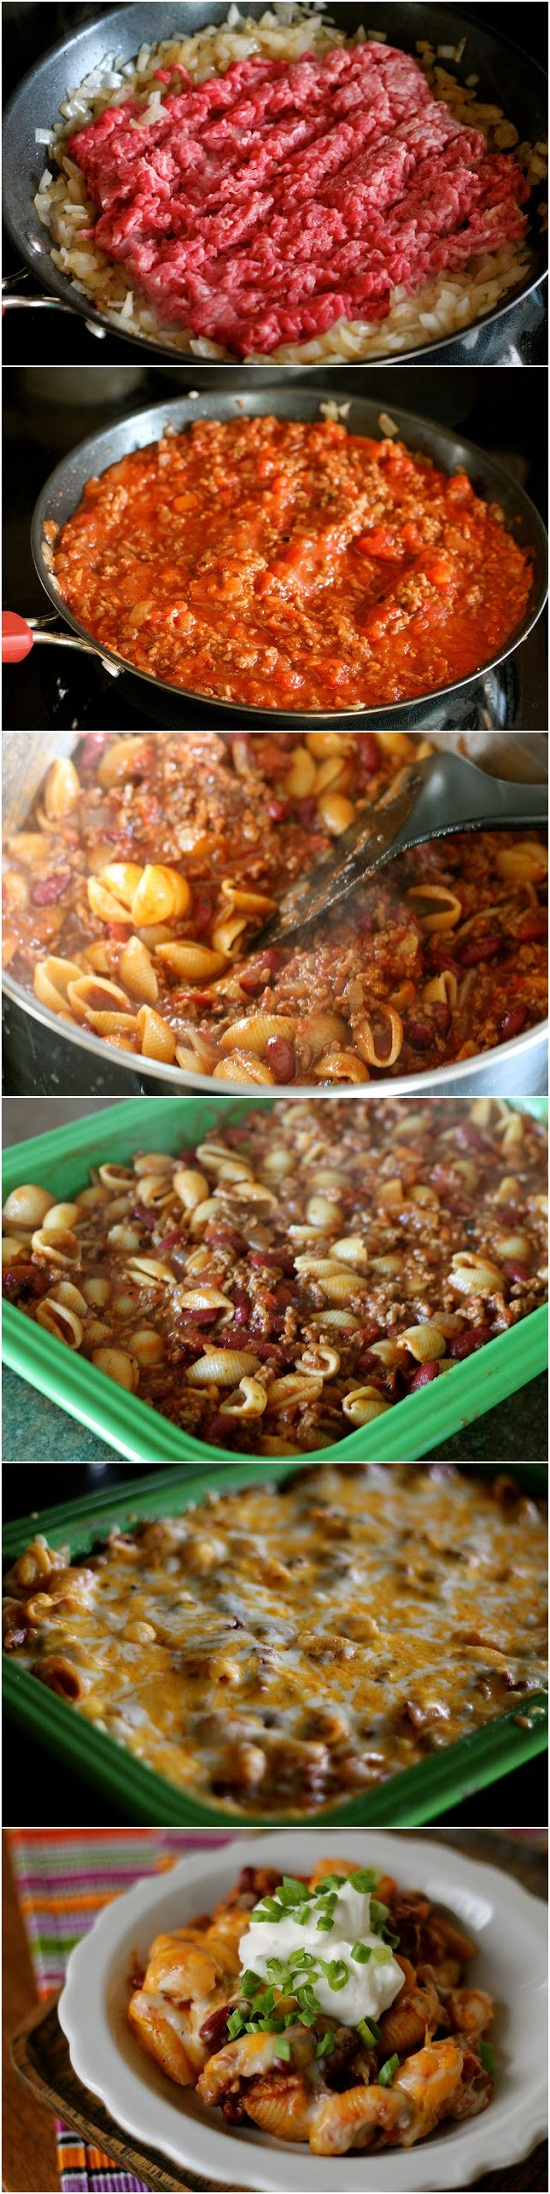 Chili-Pasta-Bake-Recipe